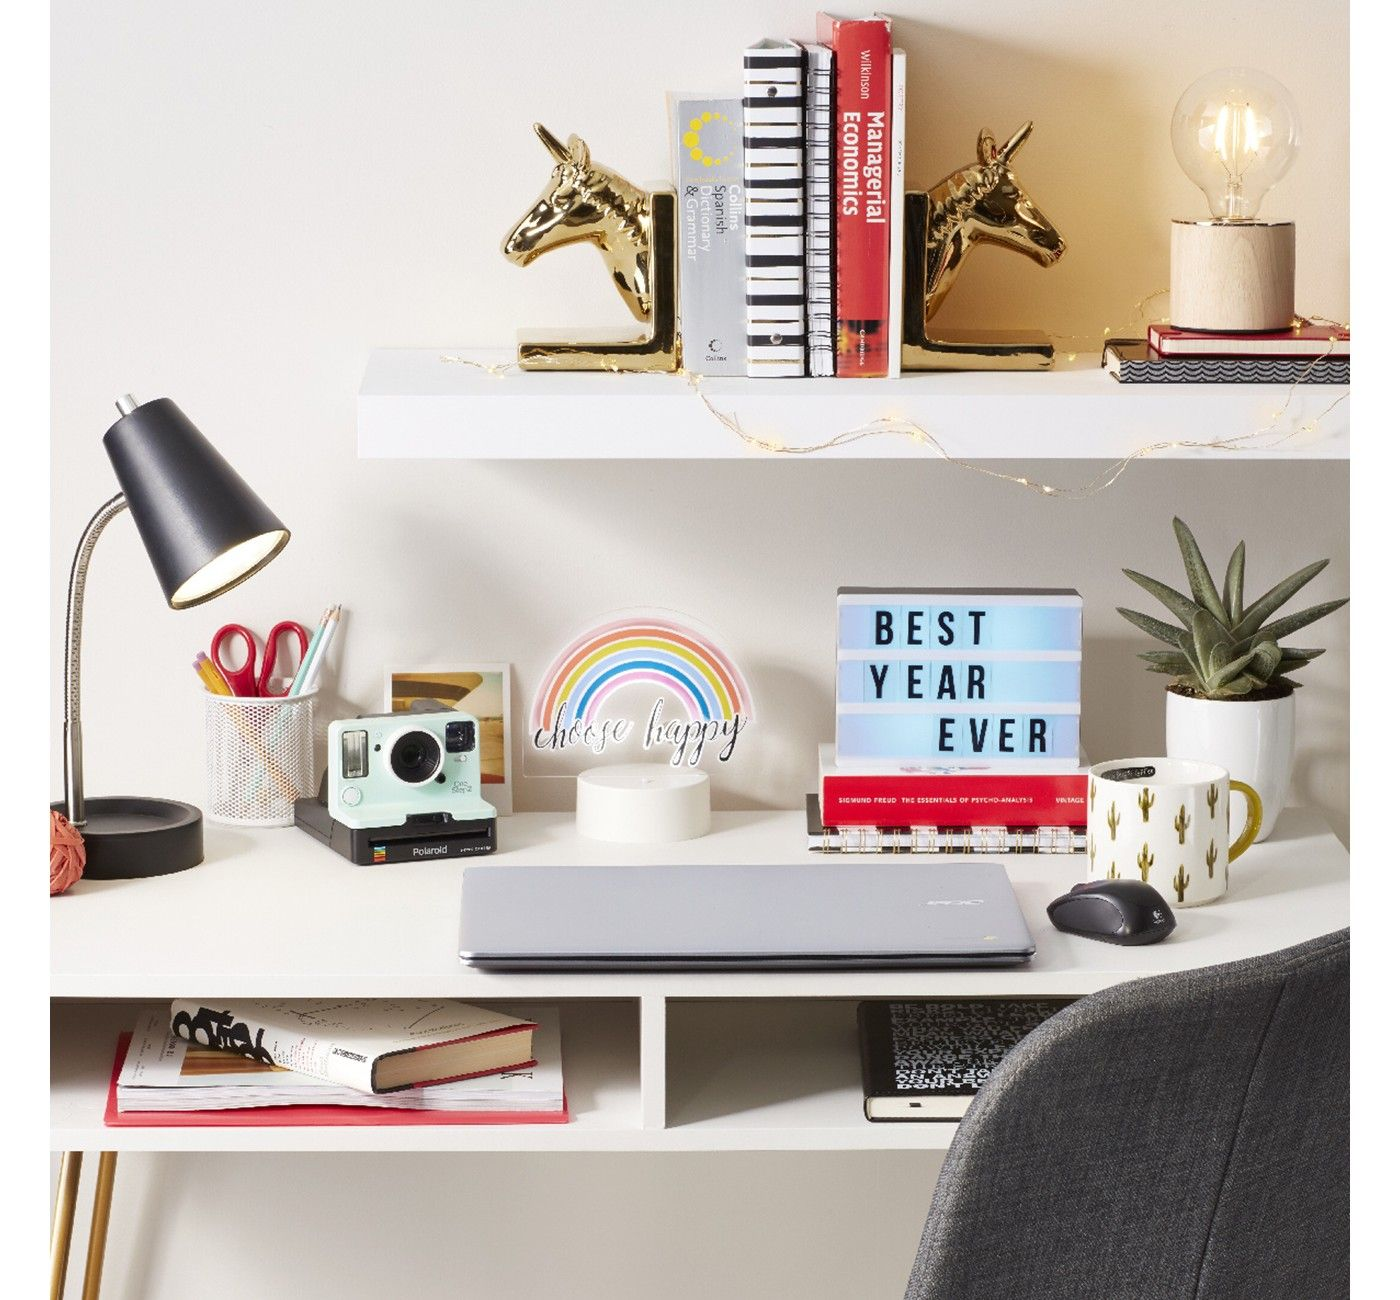 12 Best Dorm Room Decor Ideas for 2018   Dorm Room Decor Essentials     Target  Decorating a dorm